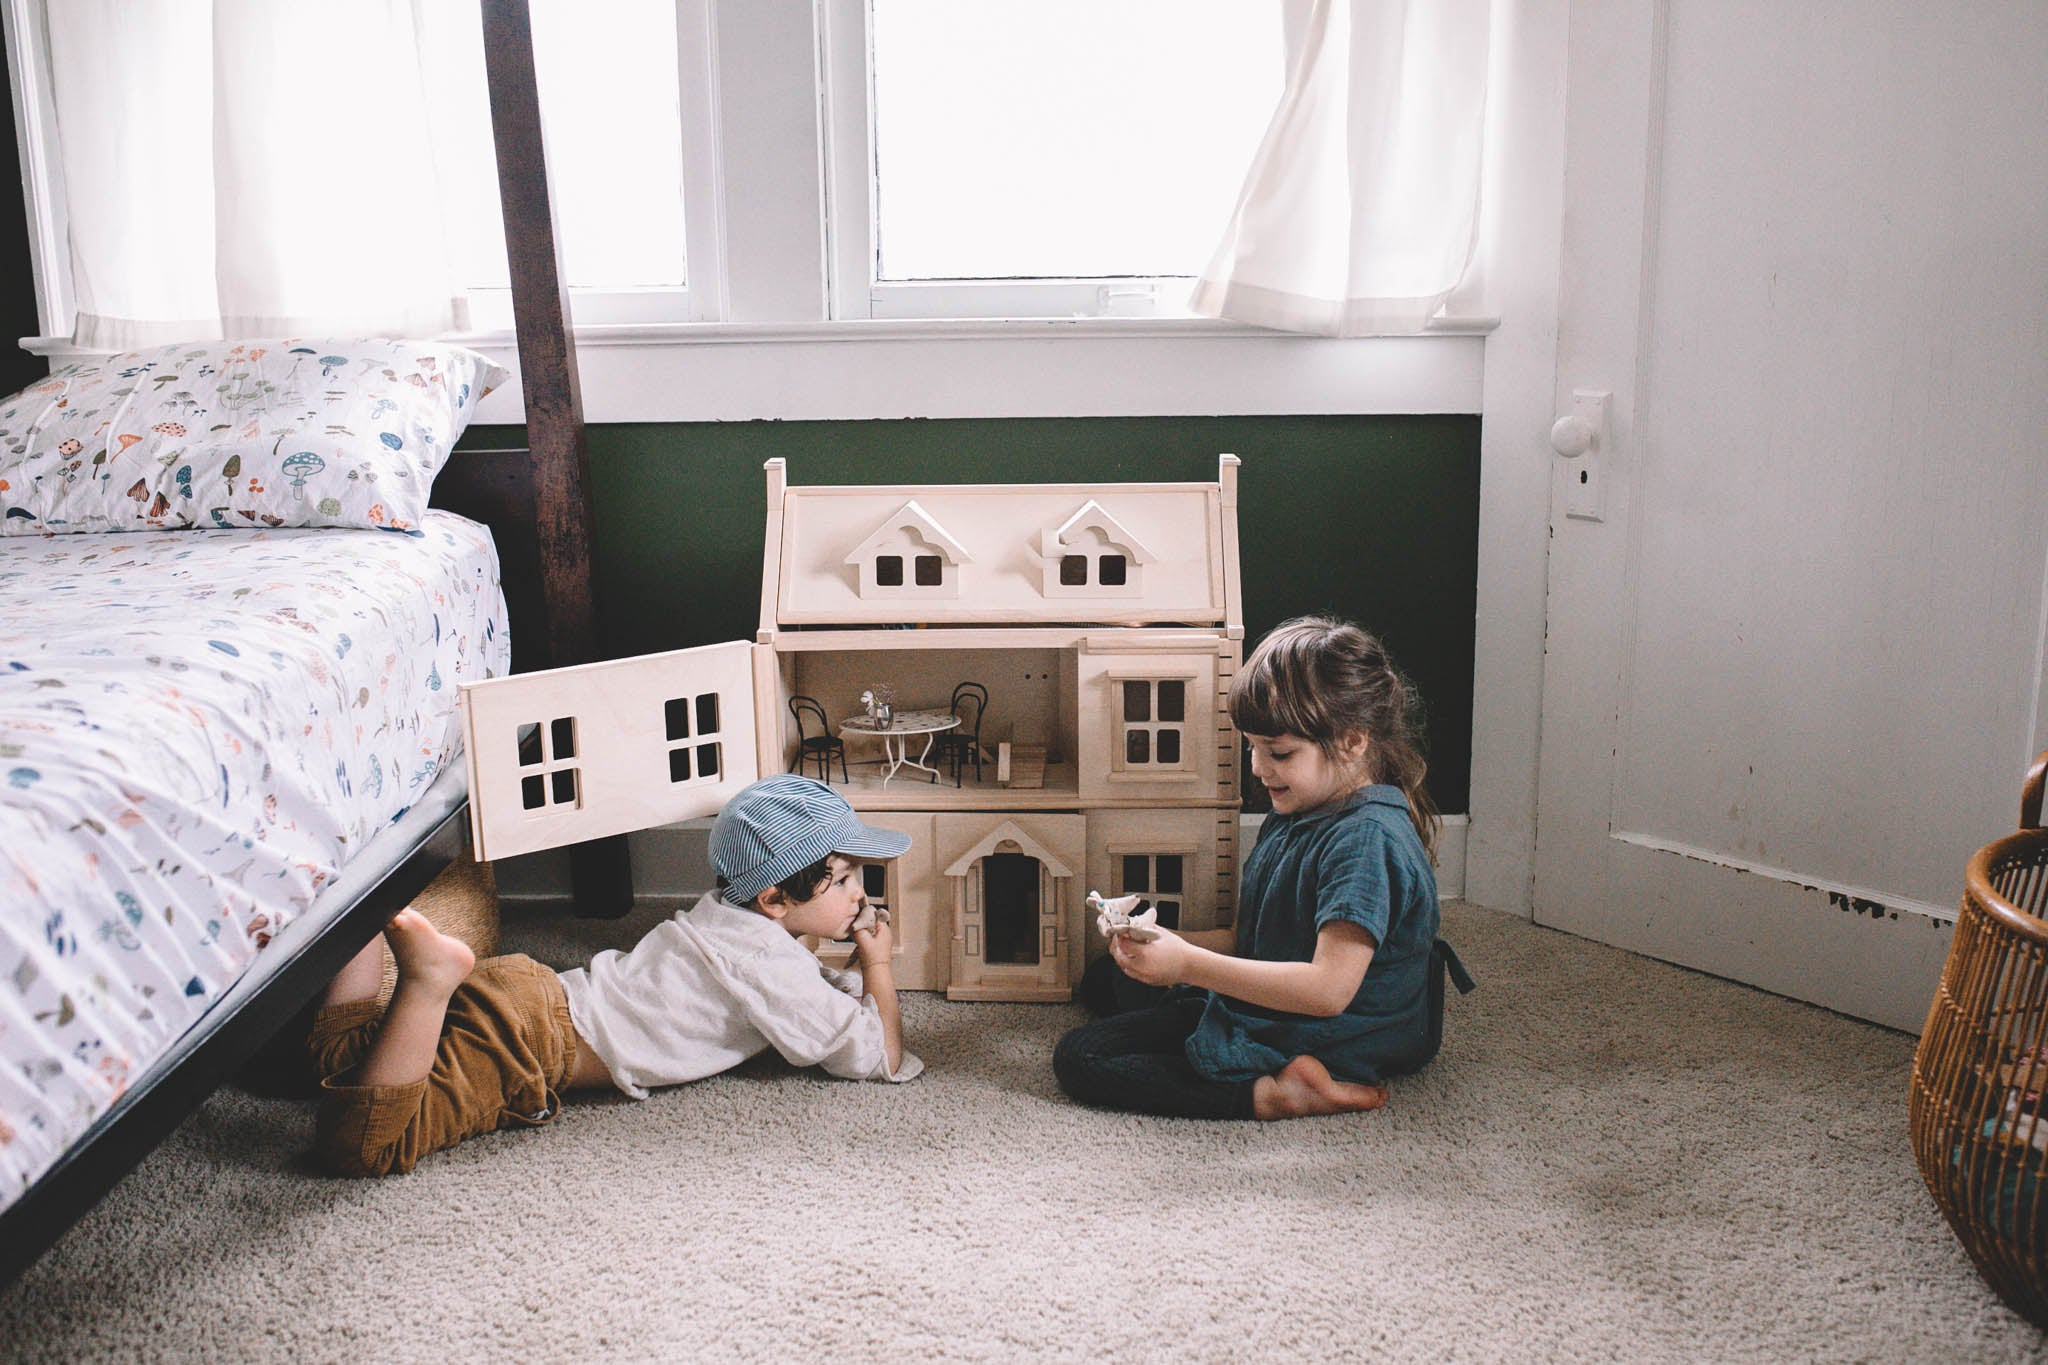 Plan toys Victorian doll's house